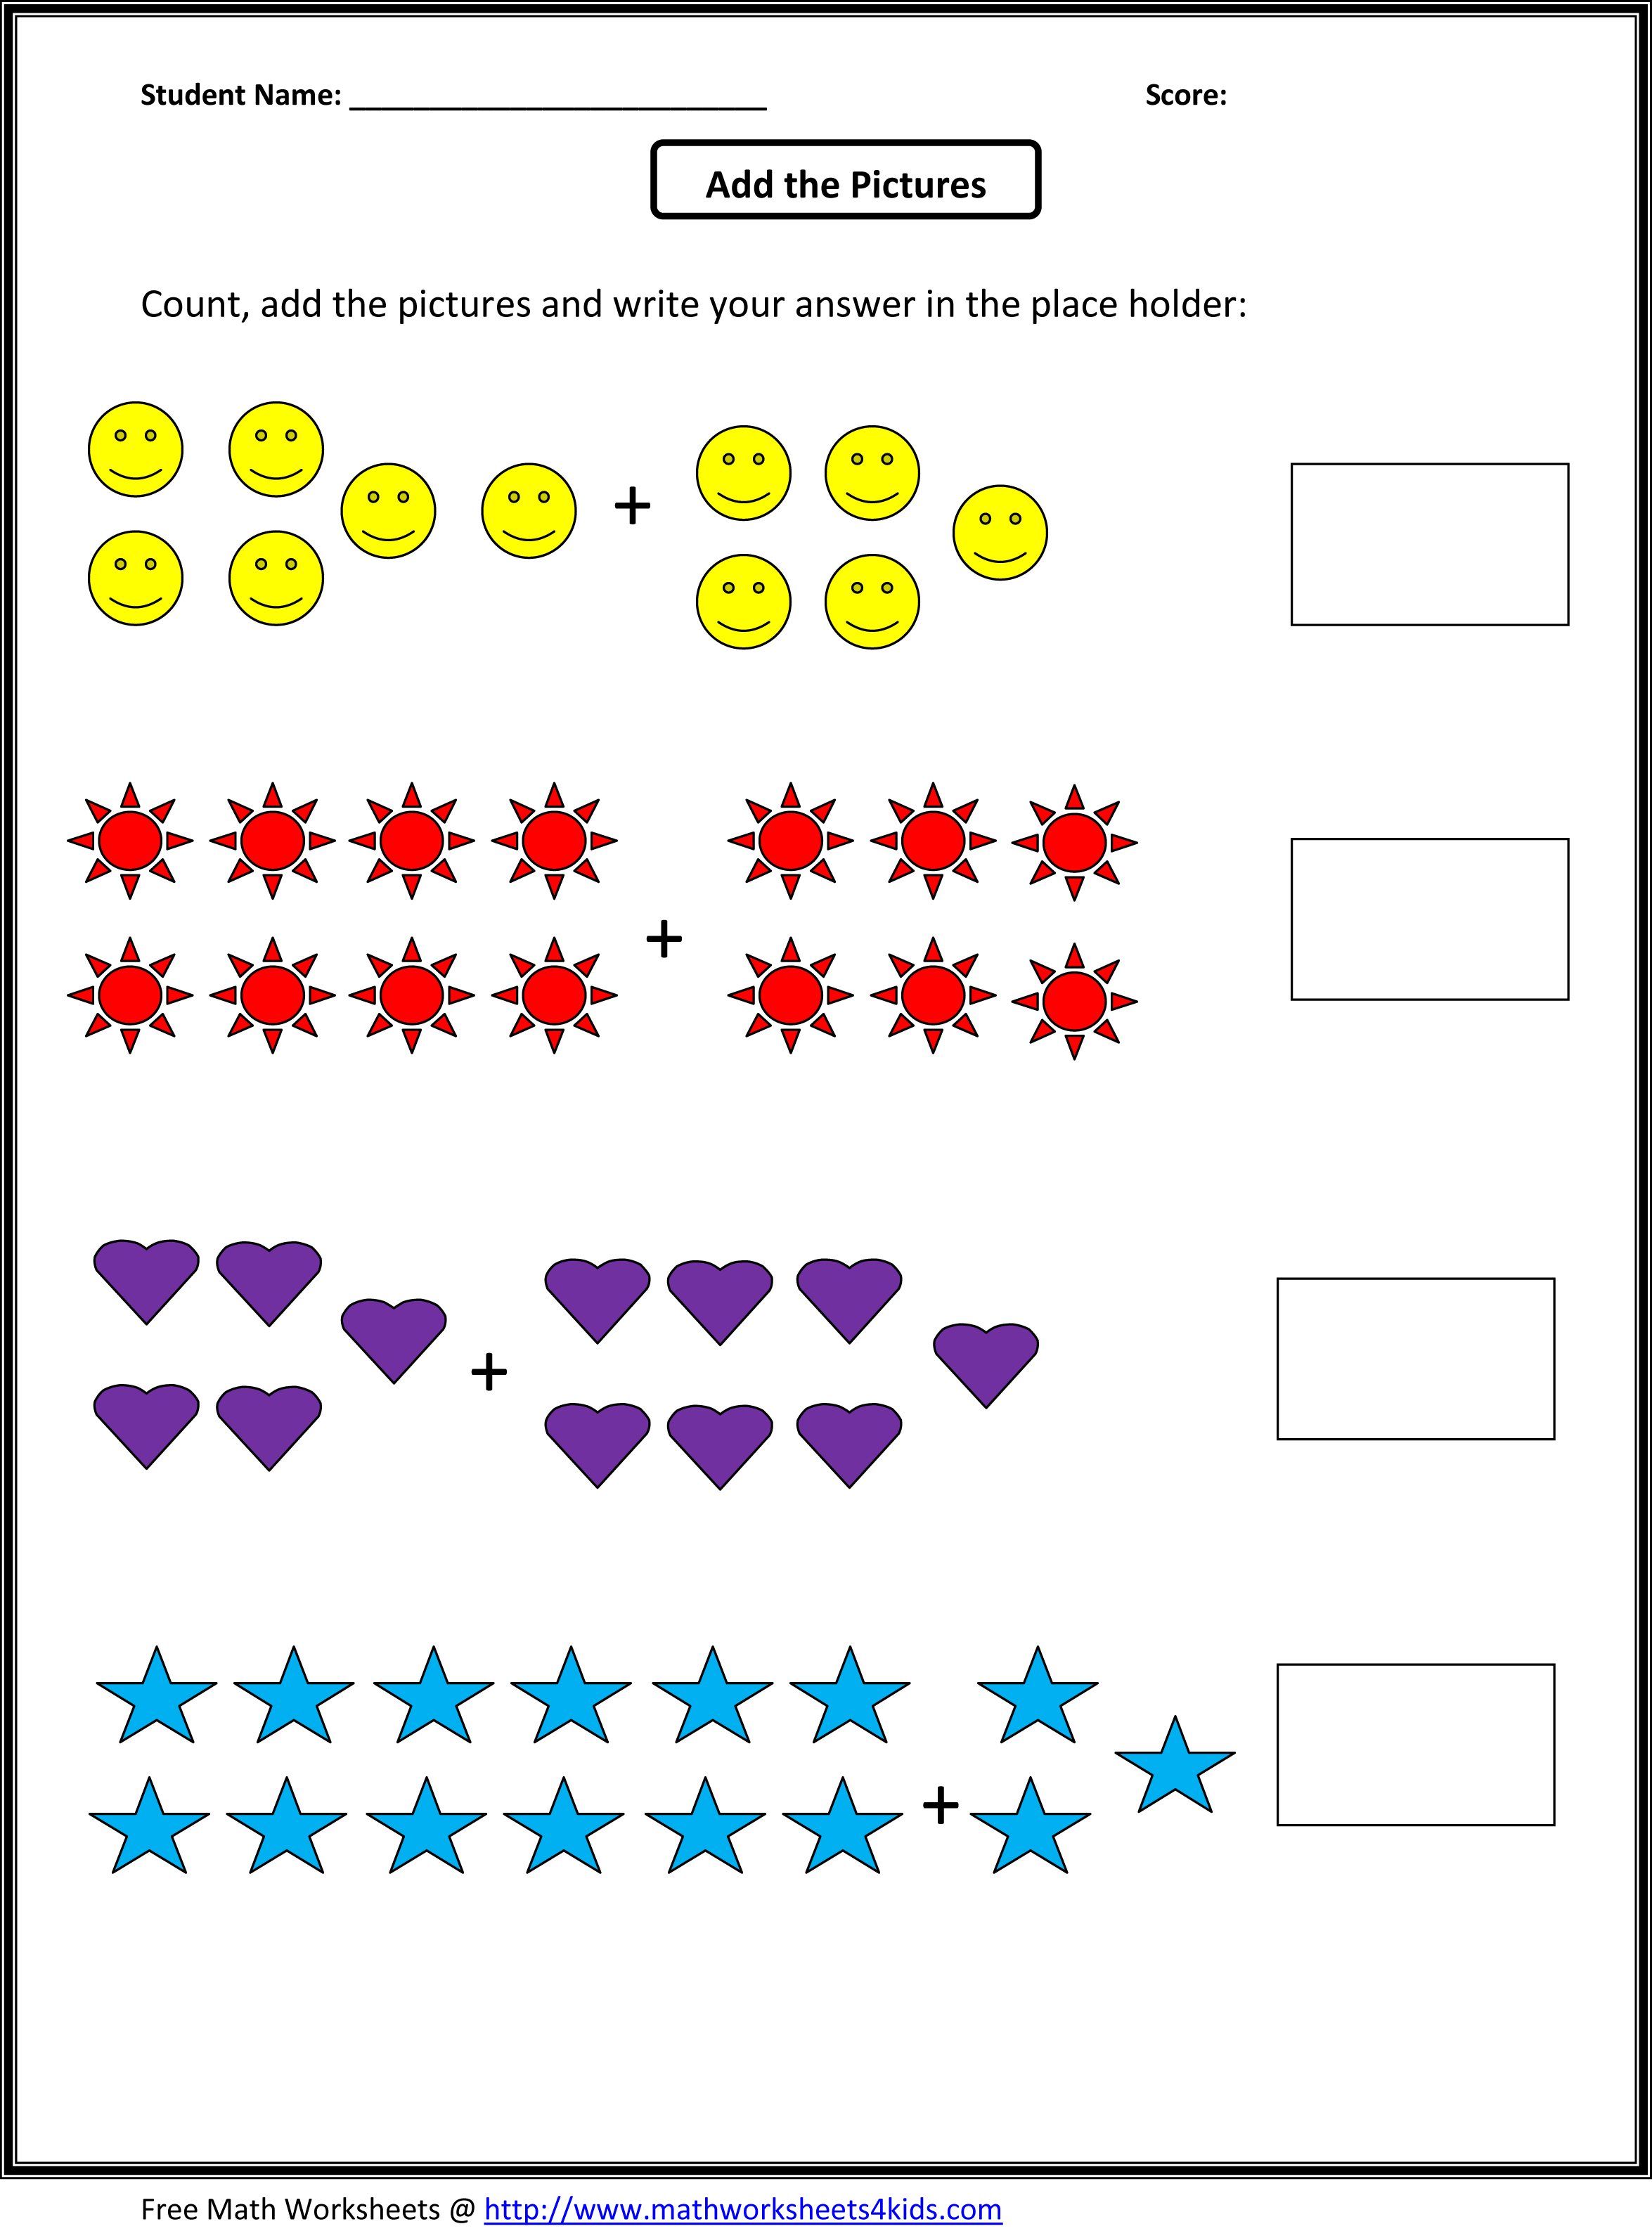 Proatmealus  Gorgeous Grade  Maths Worksheet  Reocurent With Magnificent Math Worksheets For St Grade Free  Reocurent With Astonishing Interpersonal Skills Worksheets Also Ez Worksheet For Line  In Addition Patterns And Sequences Worksheet And Compound Subject Worksheet As Well As Th Grade Math Common Core Worksheets Additionally Name Ionic Compounds Worksheet From Reocurentcom With Proatmealus  Magnificent Grade  Maths Worksheet  Reocurent With Astonishing Math Worksheets For St Grade Free  Reocurent And Gorgeous Interpersonal Skills Worksheets Also Ez Worksheet For Line  In Addition Patterns And Sequences Worksheet From Reocurentcom